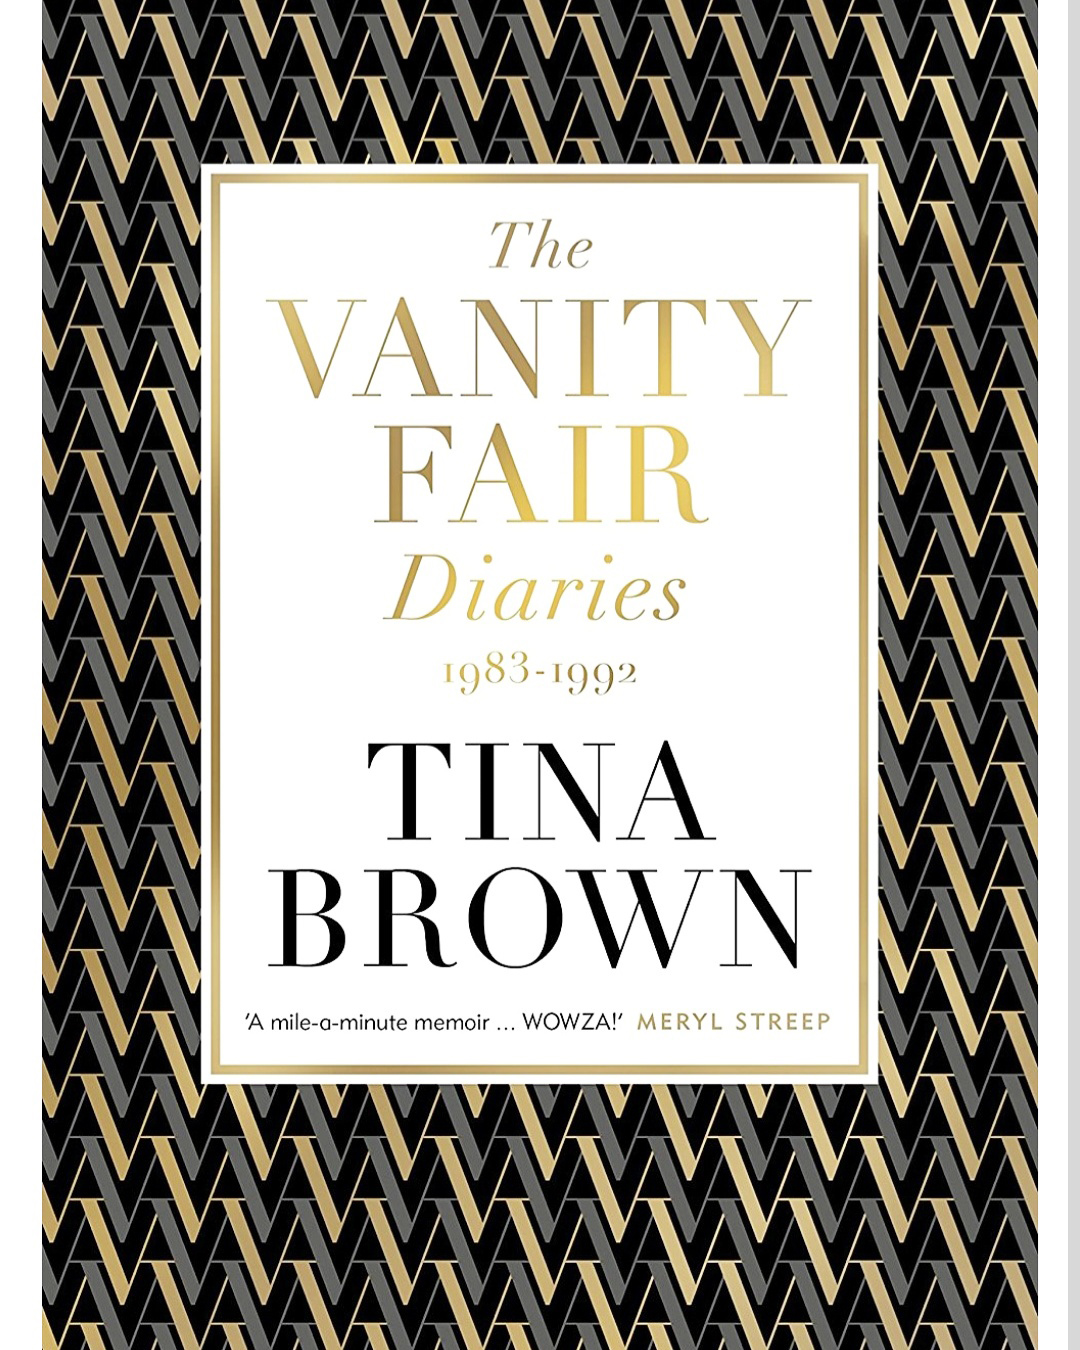 The Vanity Fair Diaries 1983-1992, by Tina Brown, published by Henry Holt and Company